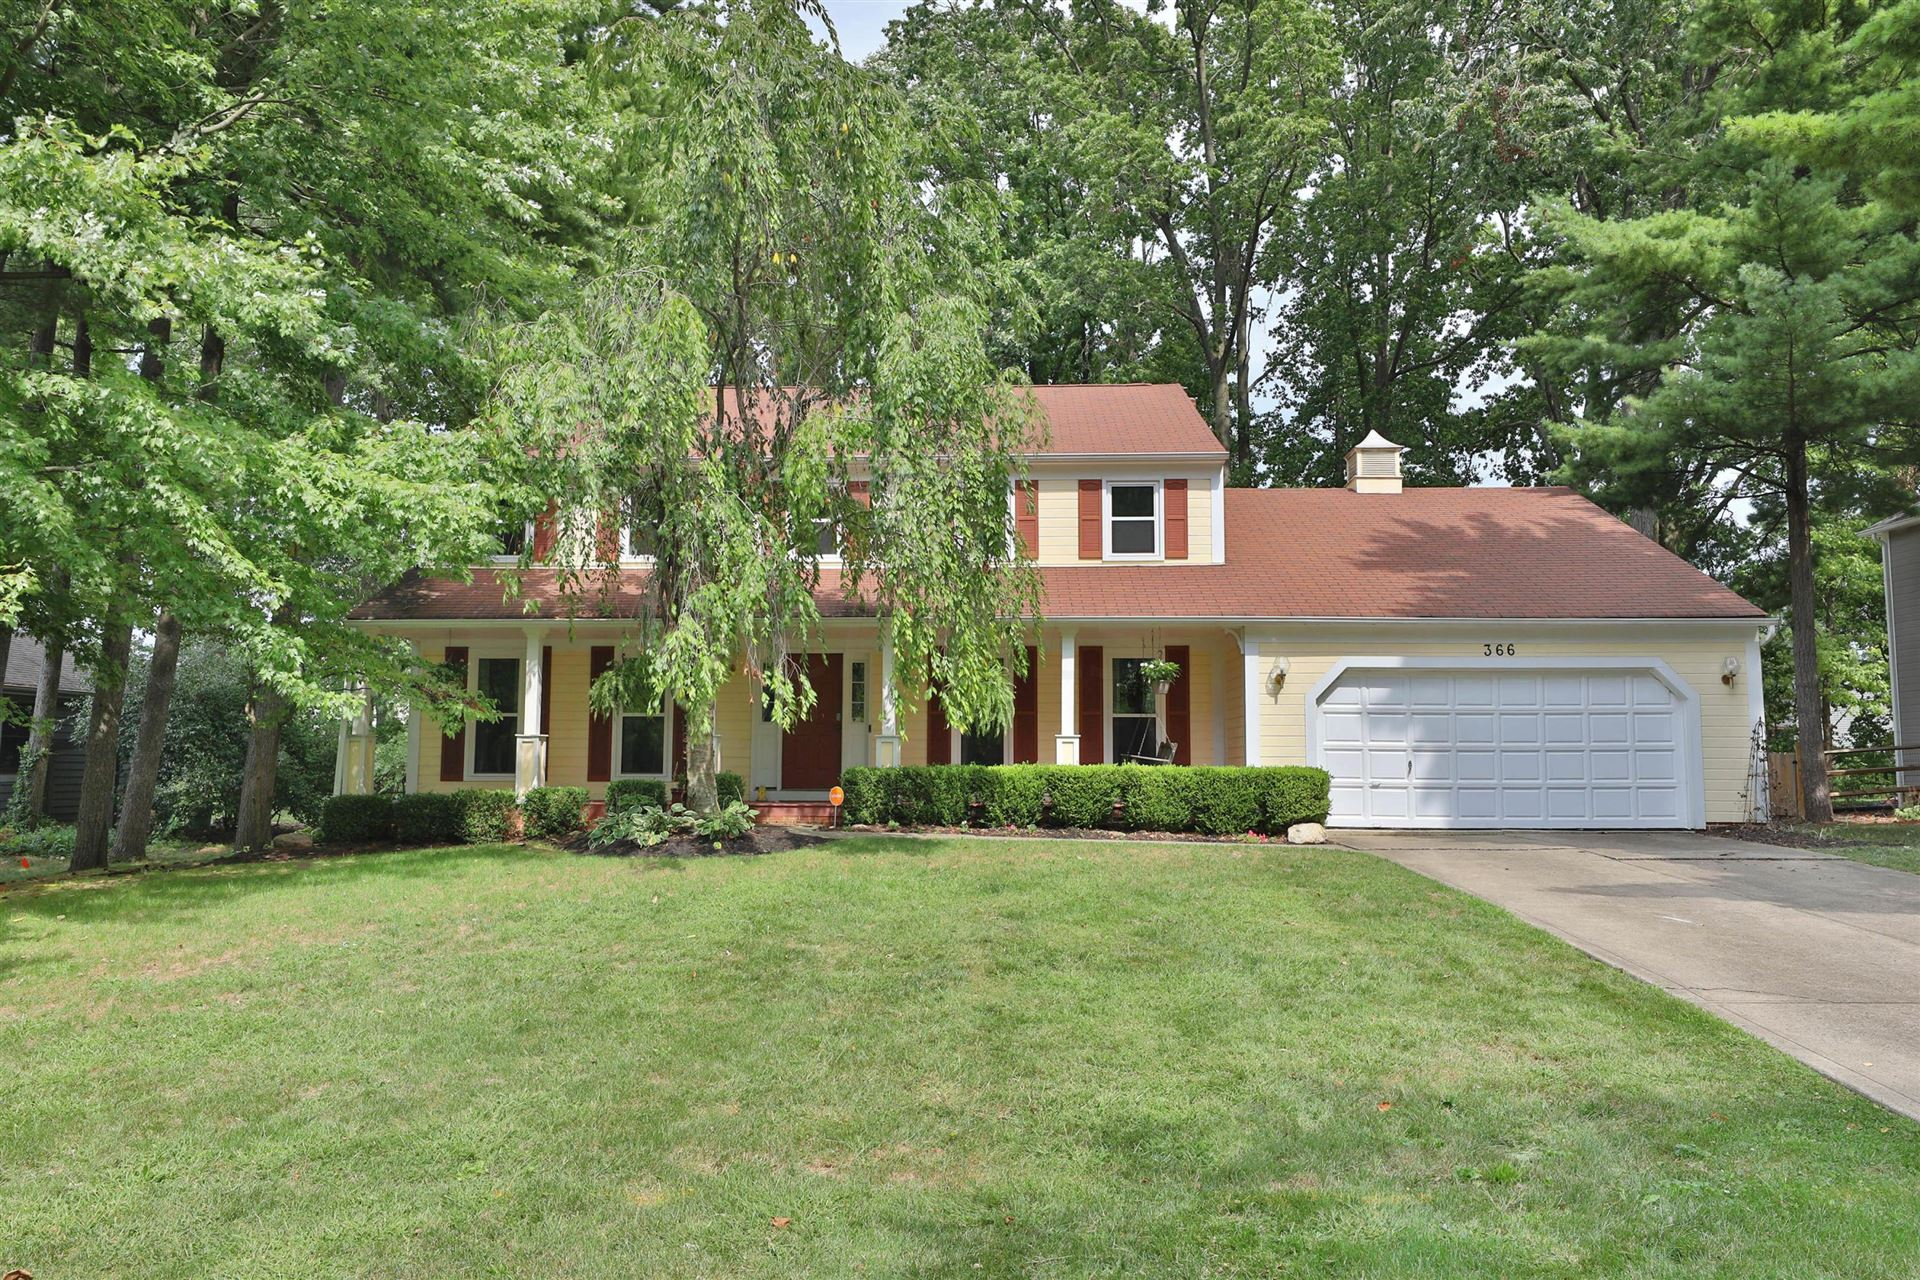 366 Bailey Place, Columbus, OH 43235 - MLS#: 220031805